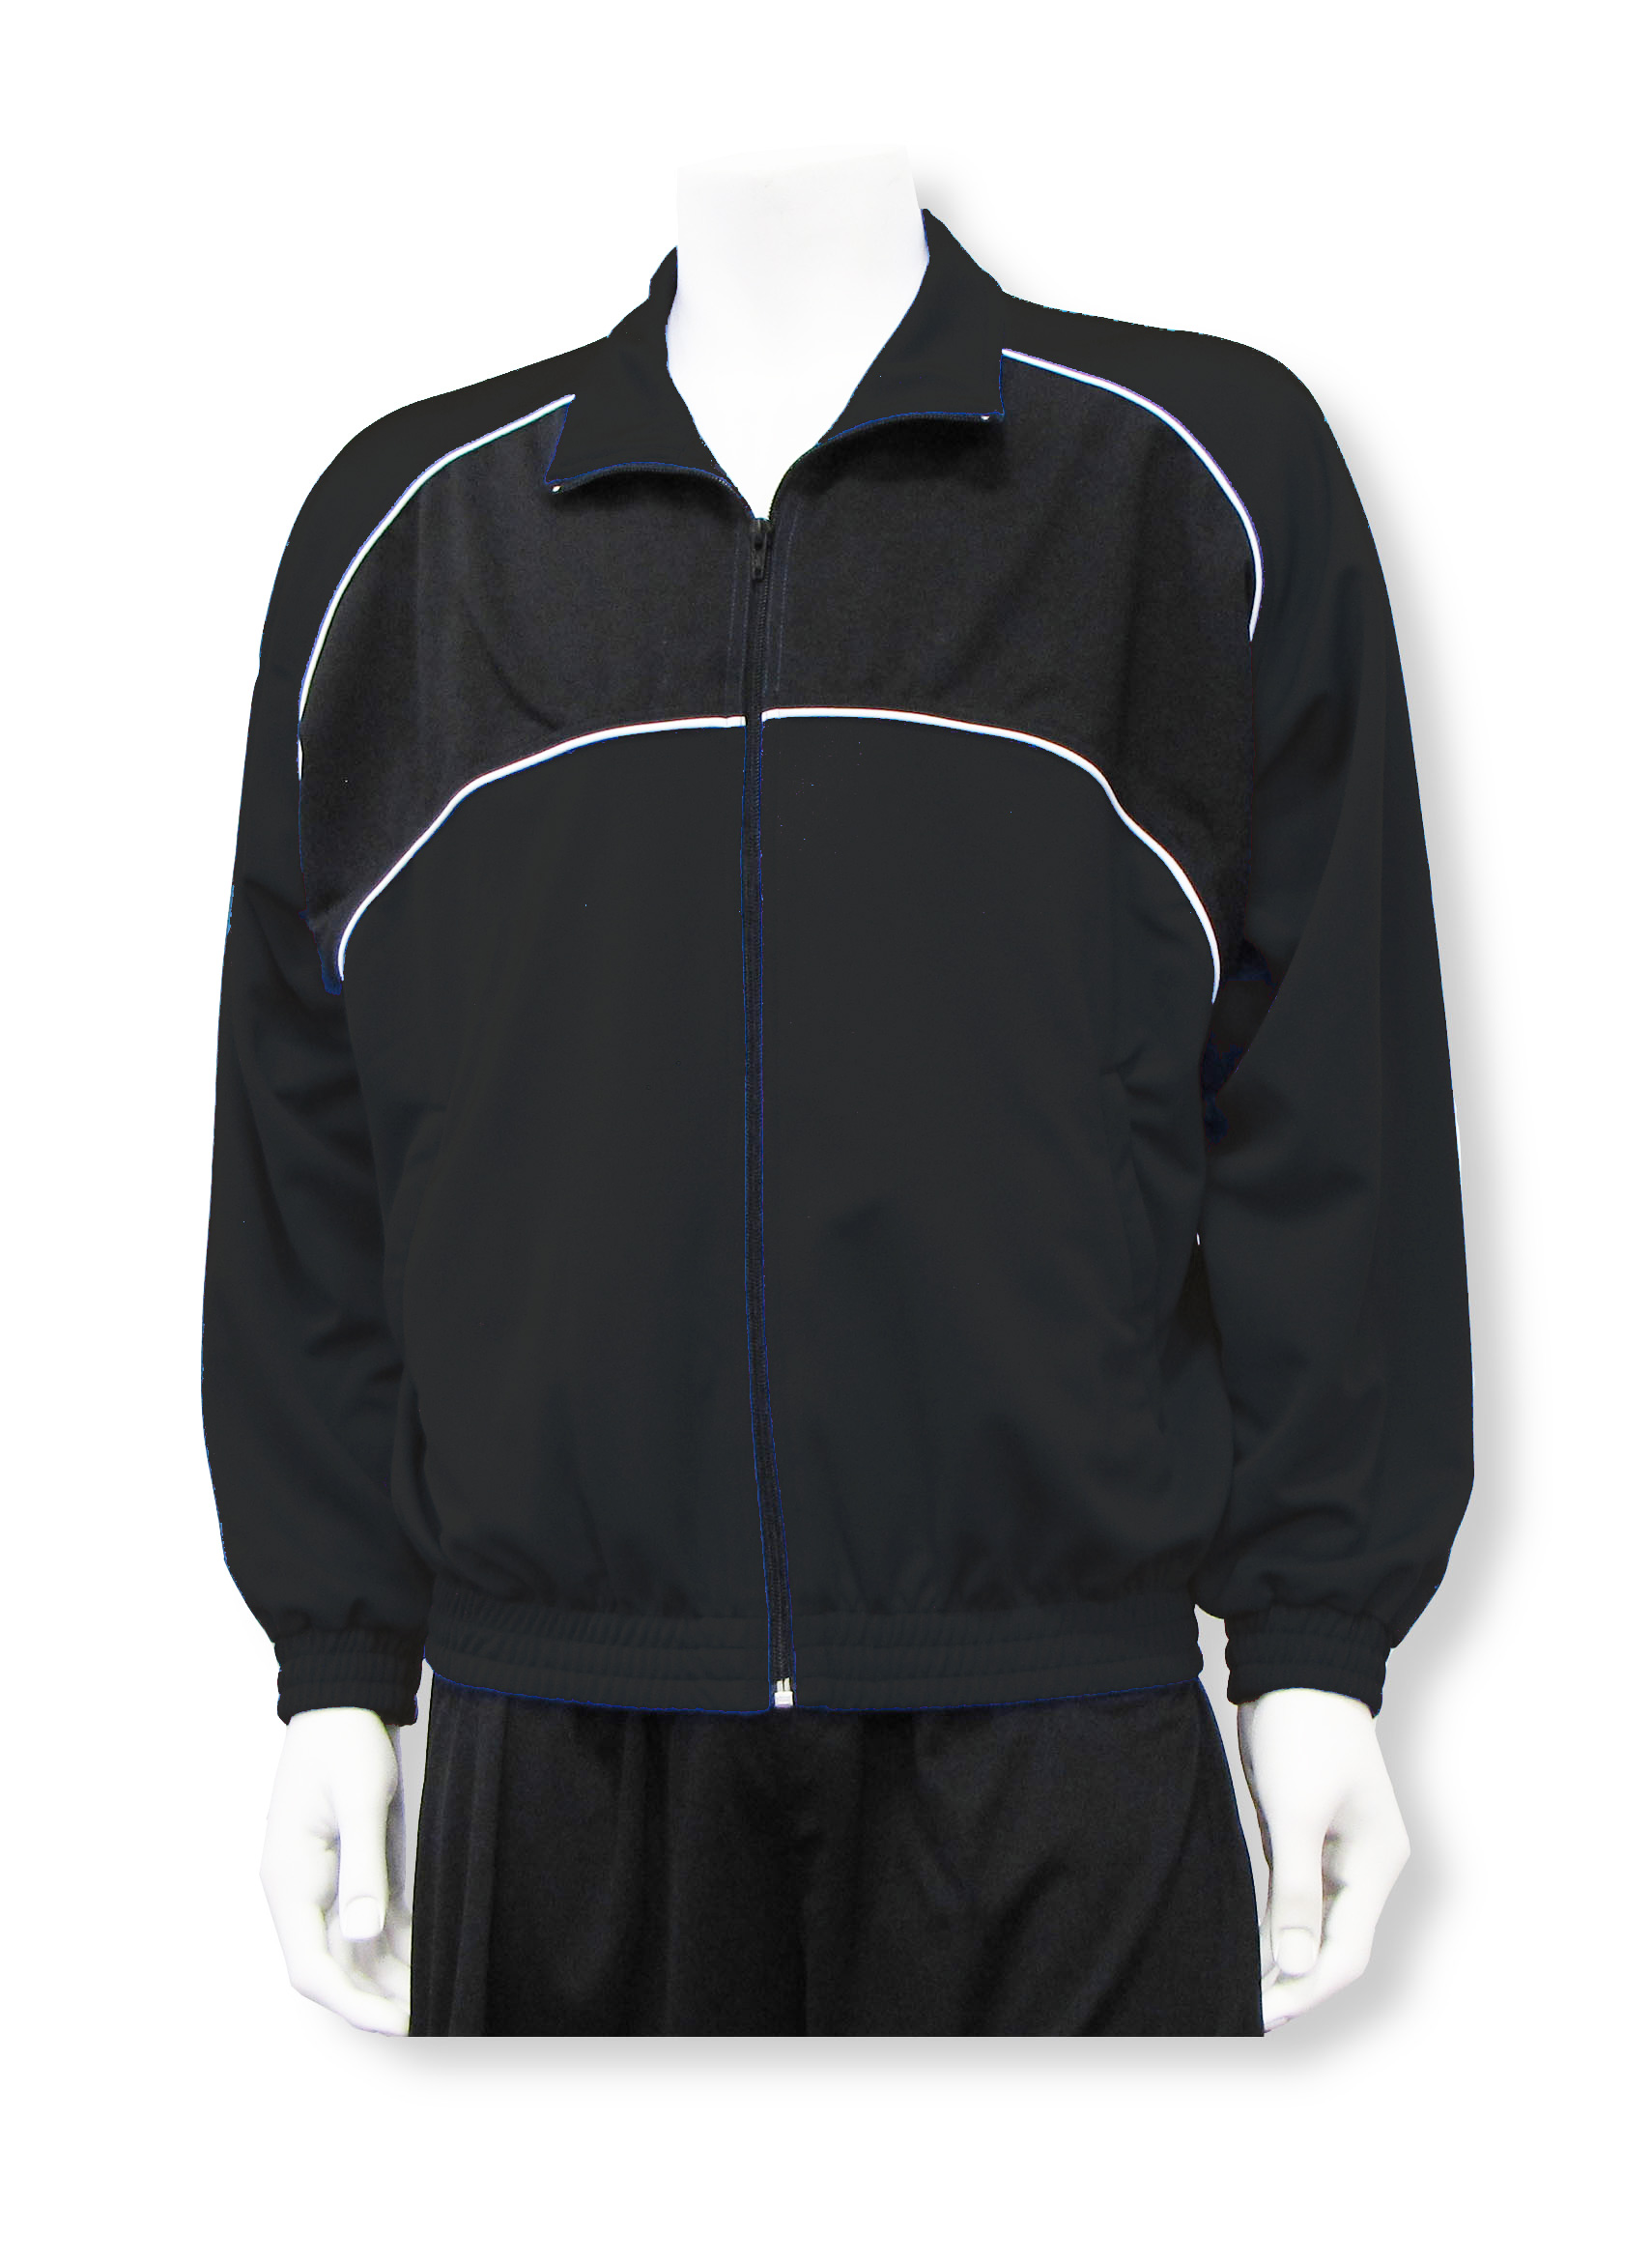 Crossfire soccer warmup jacket in black by Code Four Athletics